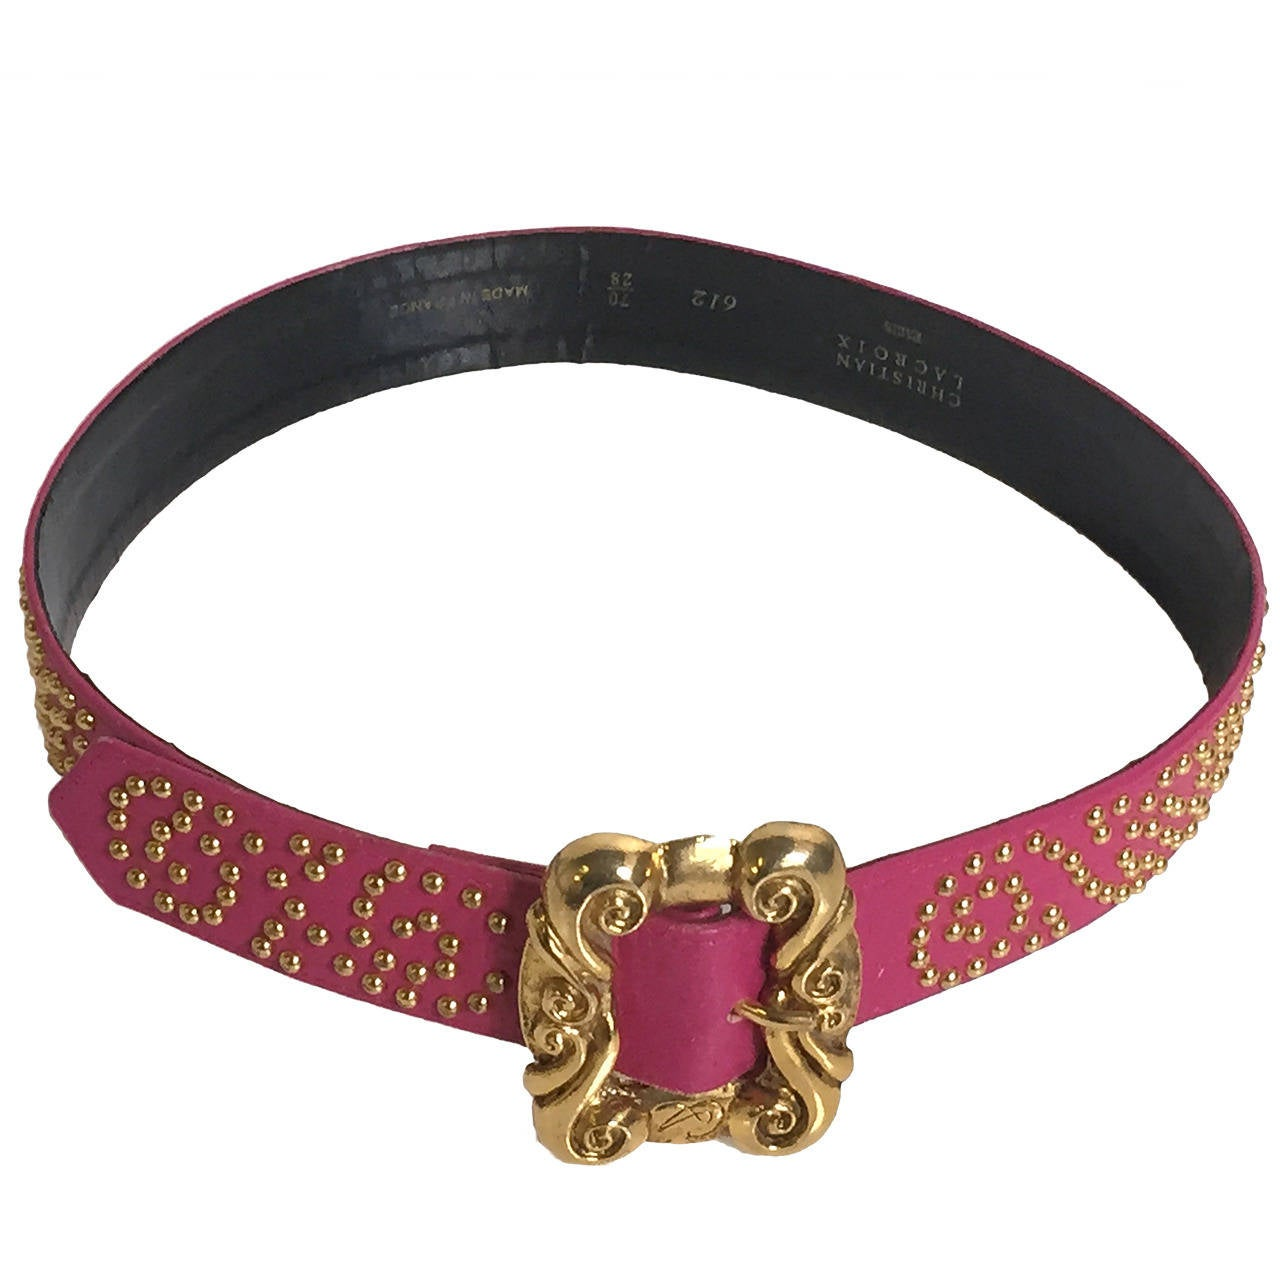 Christian Lacroix pink leather studded belt, 1980s For Sale